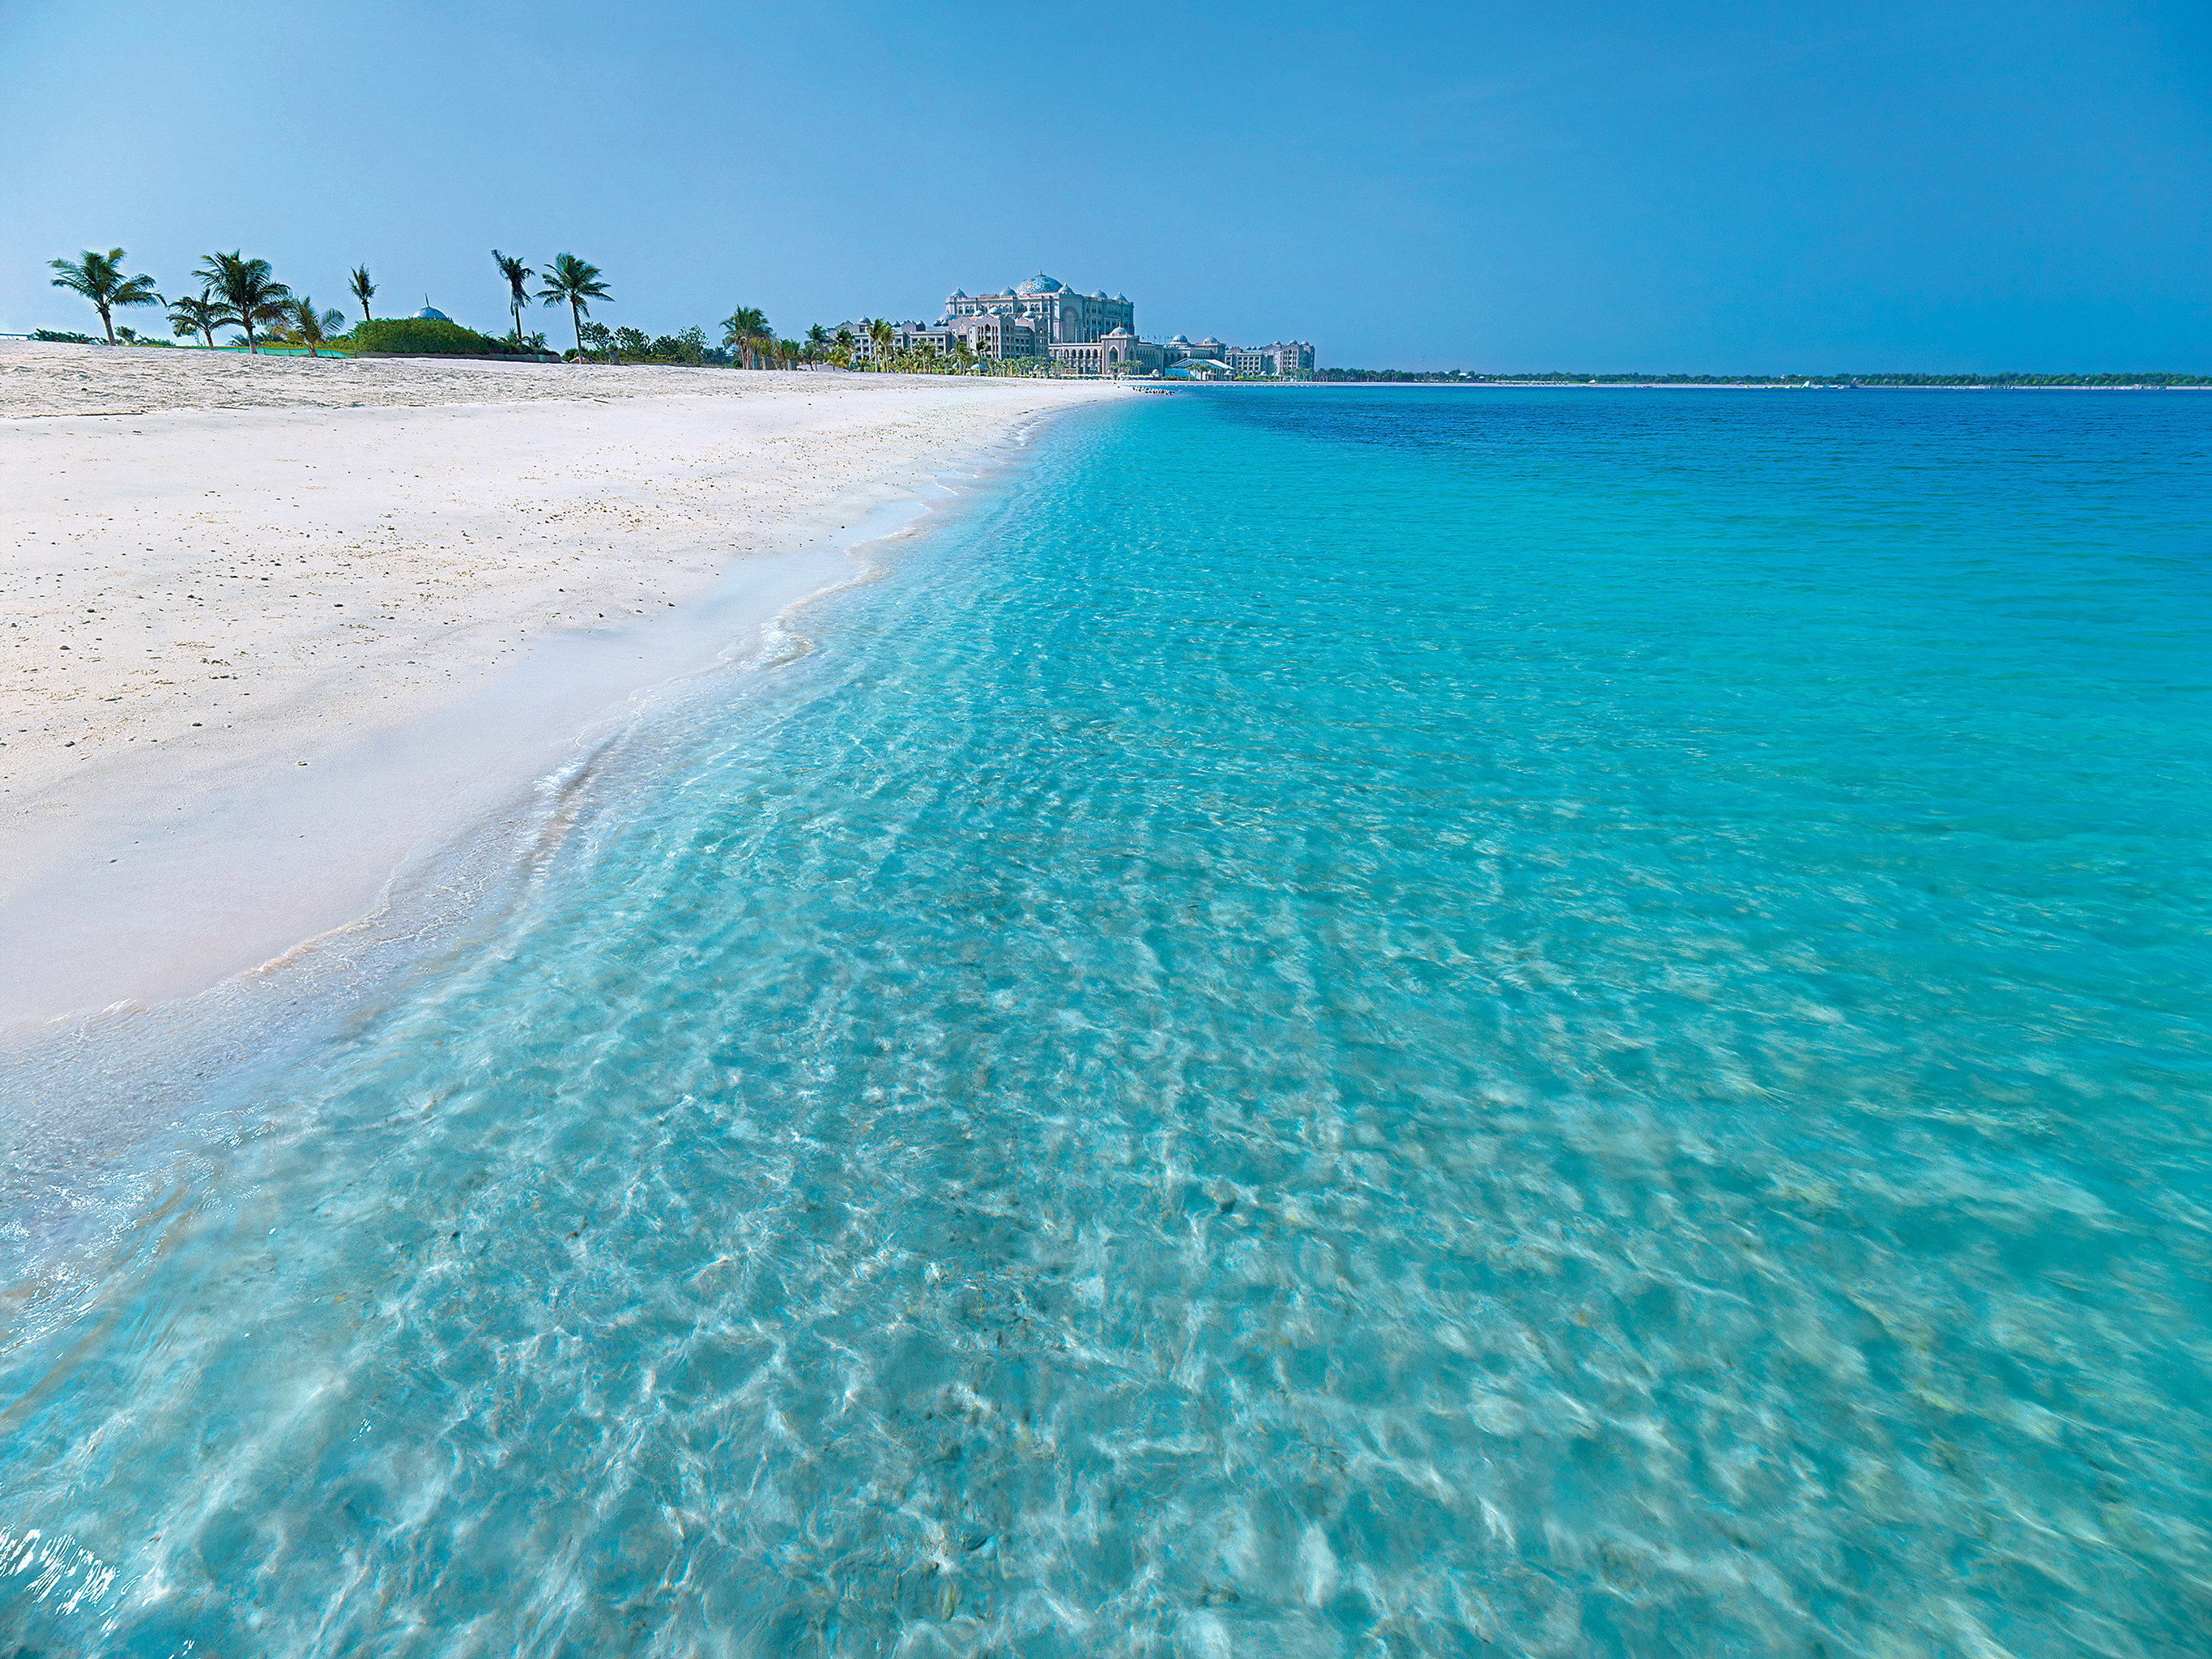 Beachfront Boat Ocean water sky Beach Sea Nature shore caribbean wind wave horizon Coast wave Lagoon atoll cape Island cay islet blue swimming clear day sandy